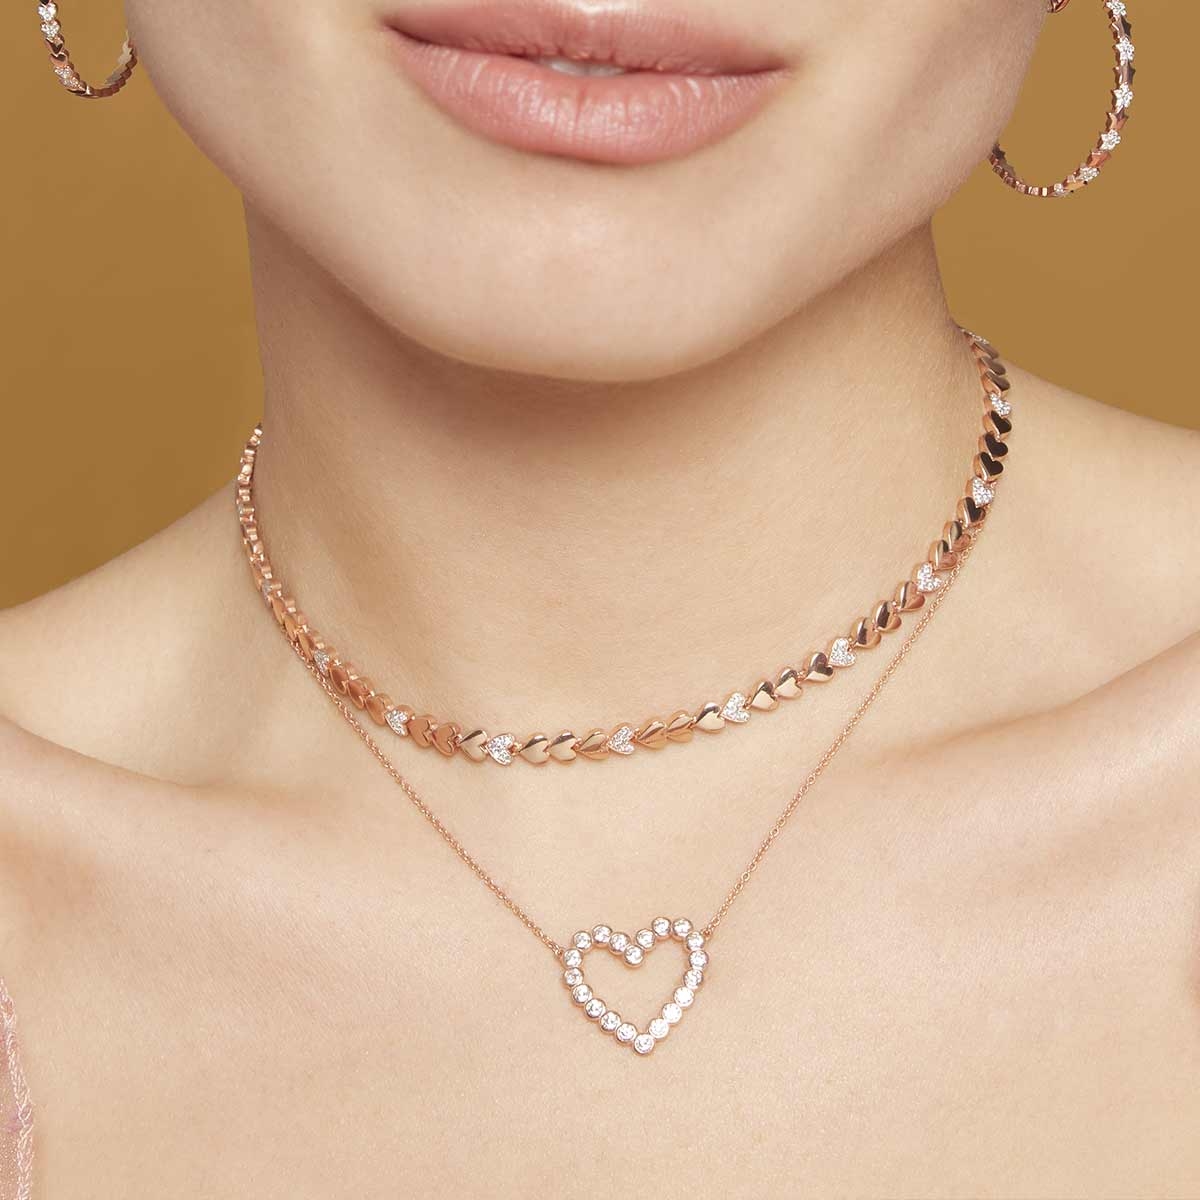 Chokers - Chain Choker with Zircons - Heart - 3 | Rue des Mille